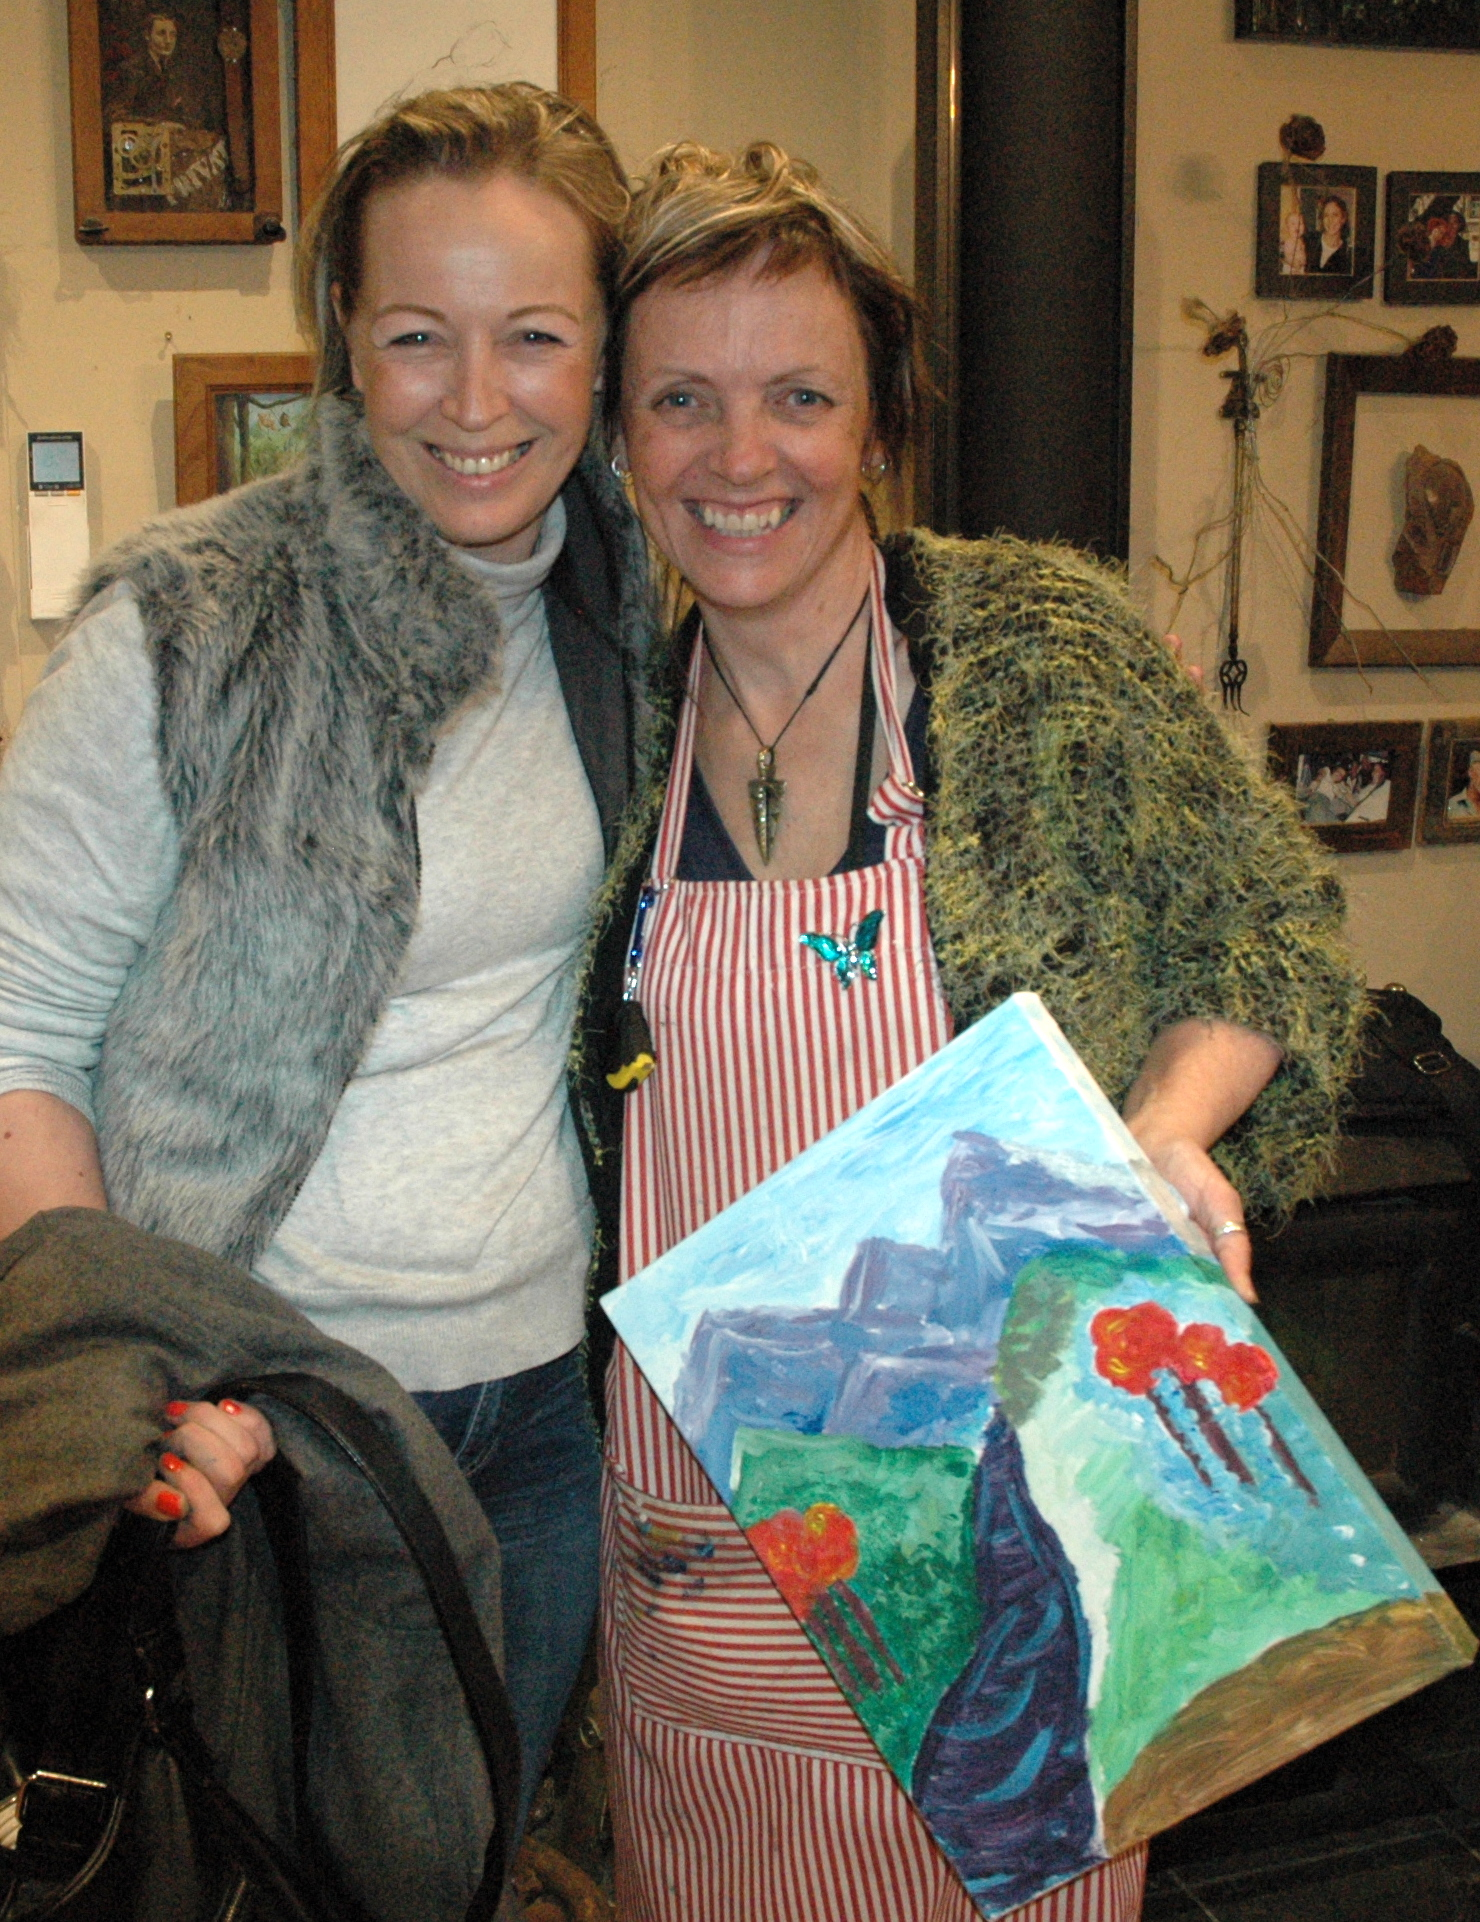 AAP 1901 - Di & Fiona B with her paintin